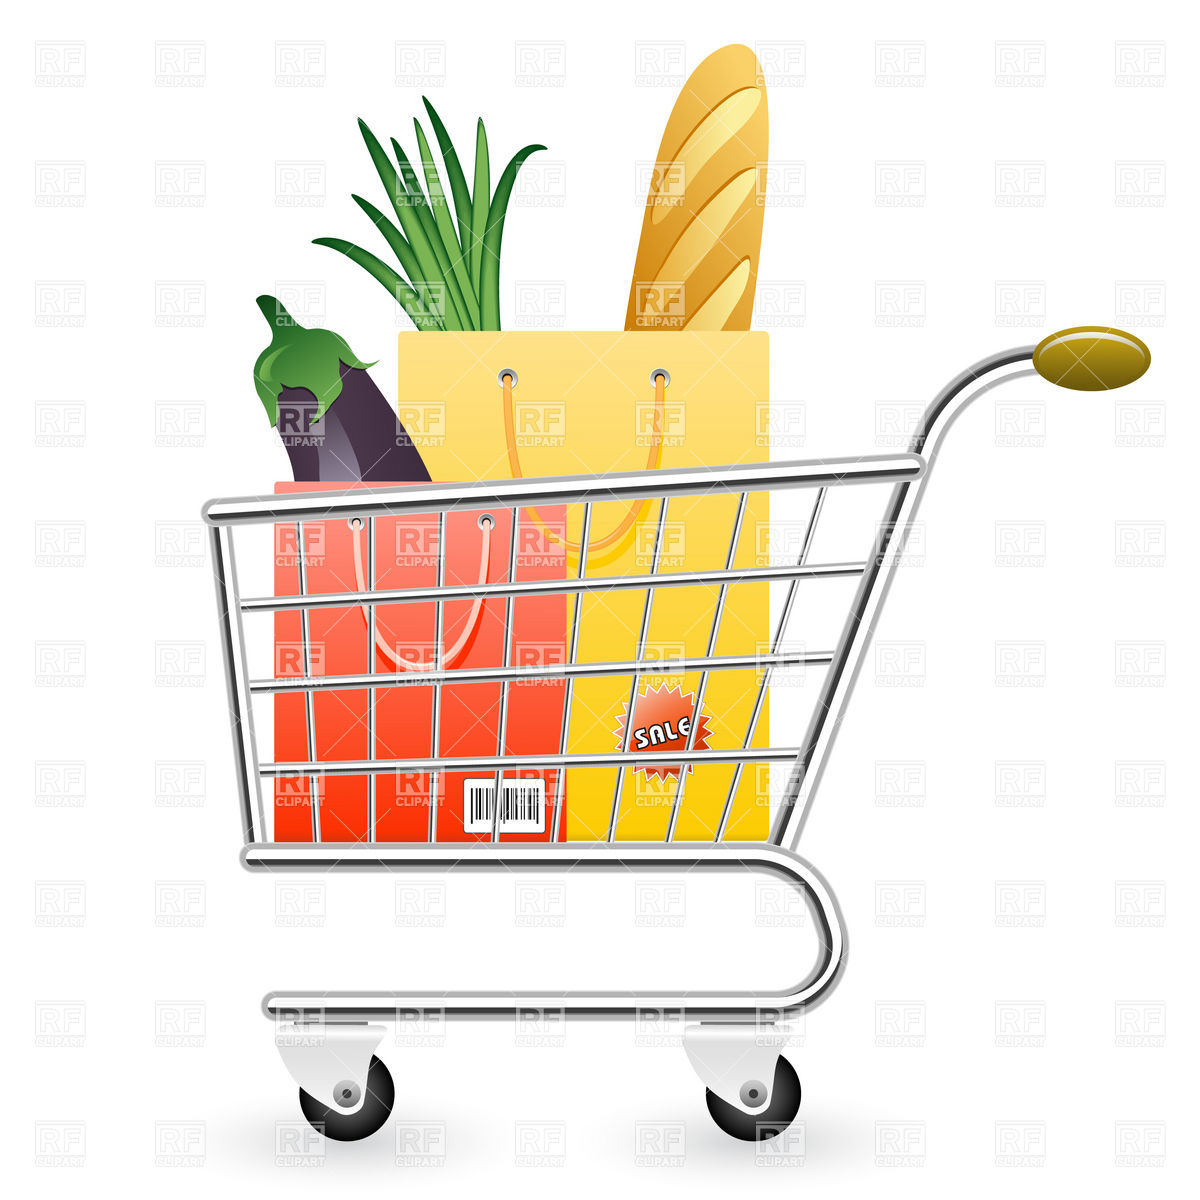 Shopping cart full of products Vector Image #5932.